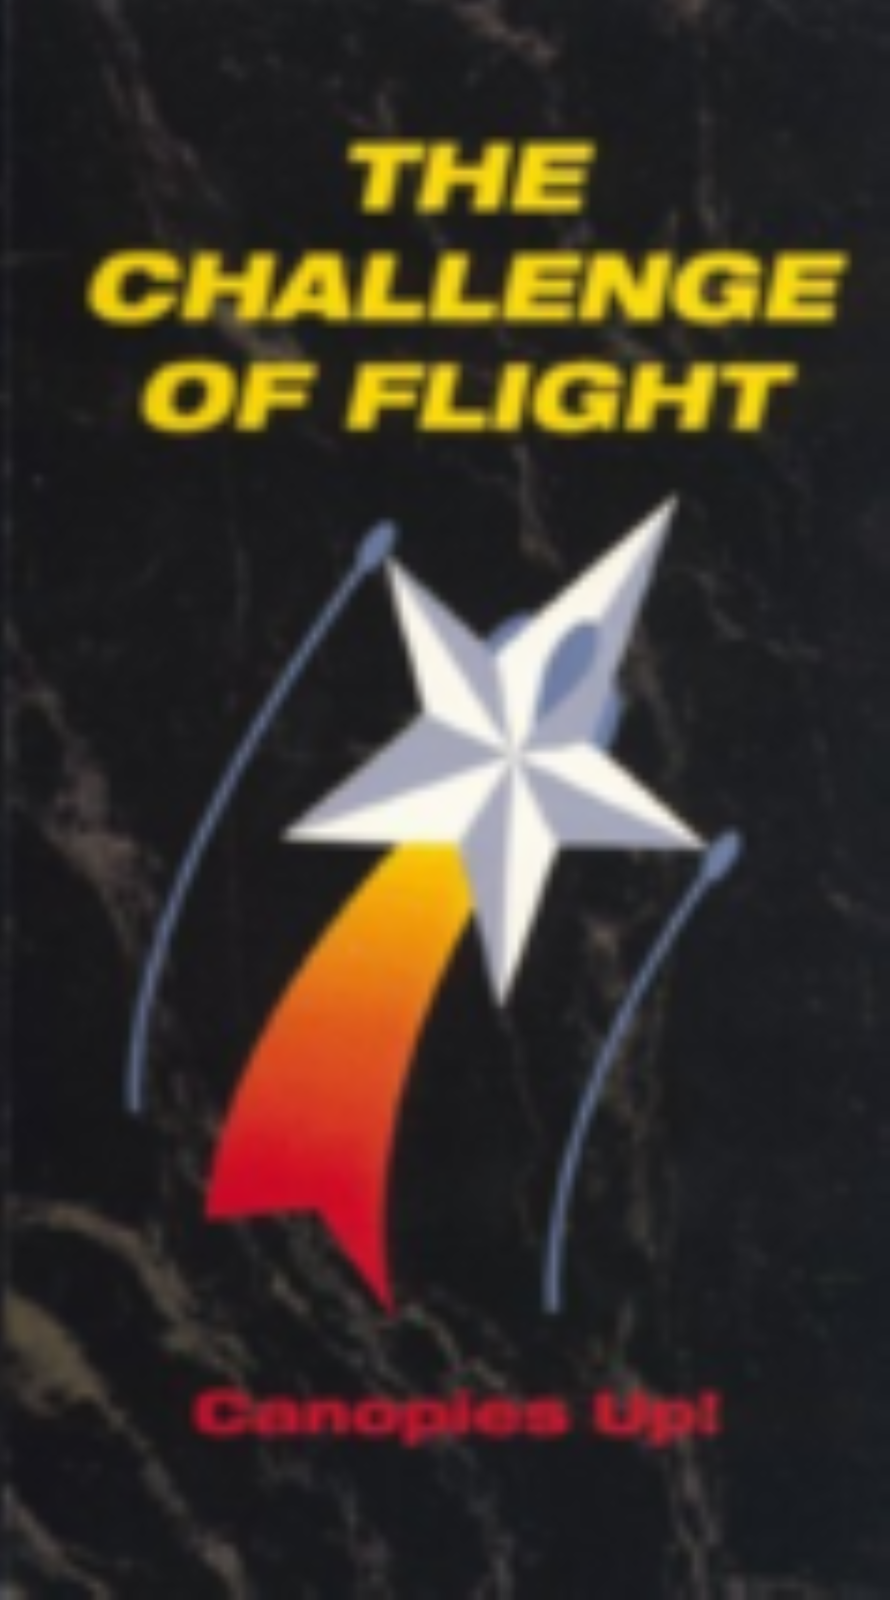 Challenge Of Flight Vol. 4: Canopies Up! Vhs